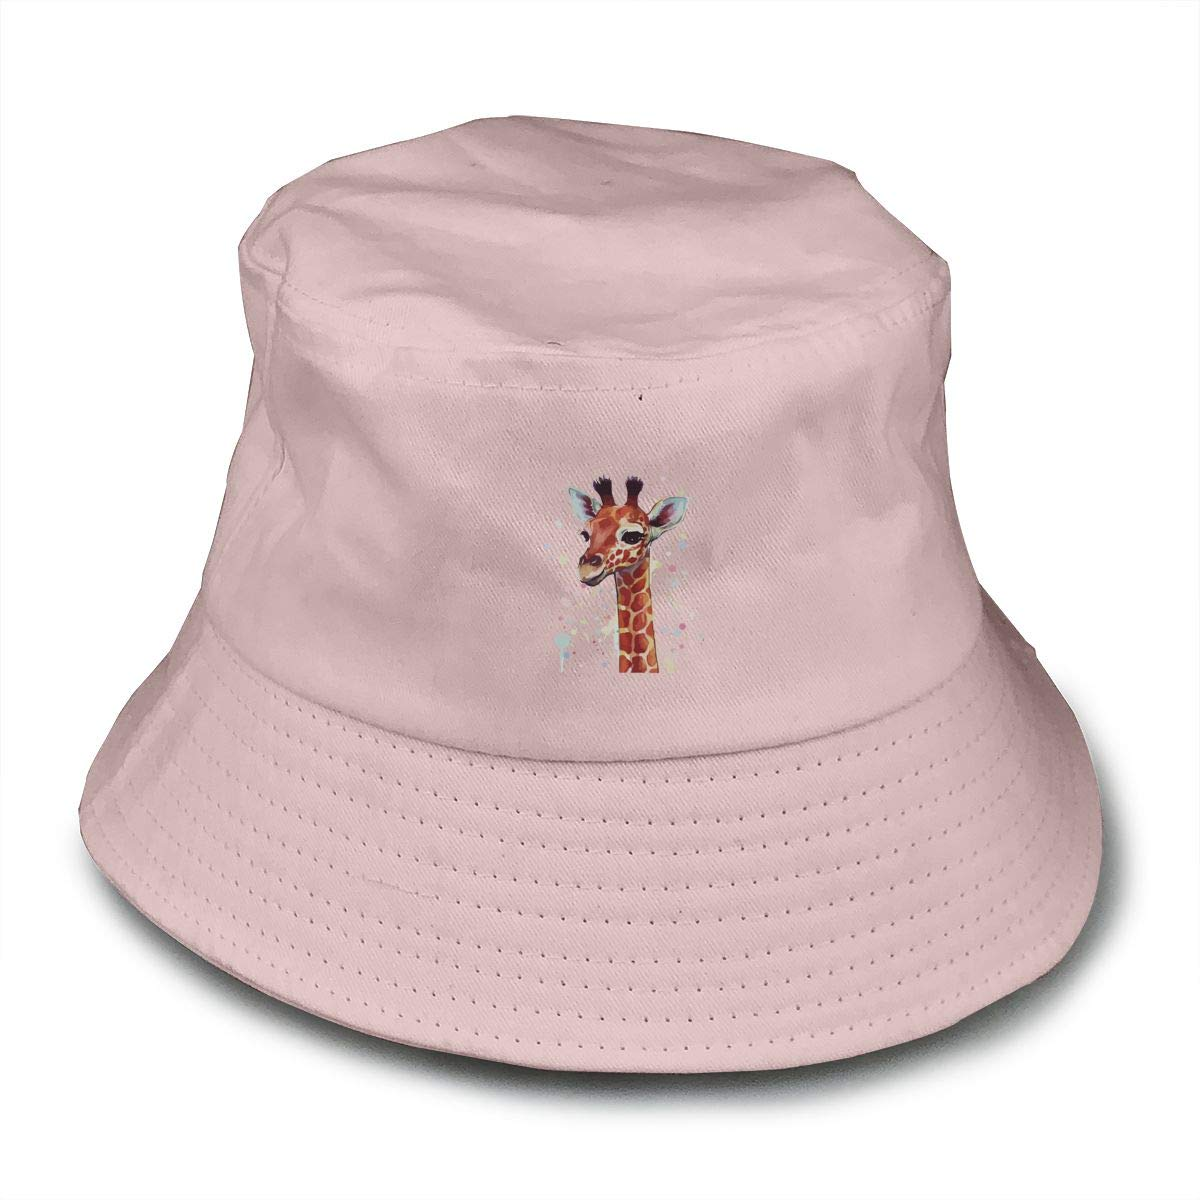 Cute Giraffe Unisex Cotton Packable Pink Travel Bucket Hat Fishing Cap